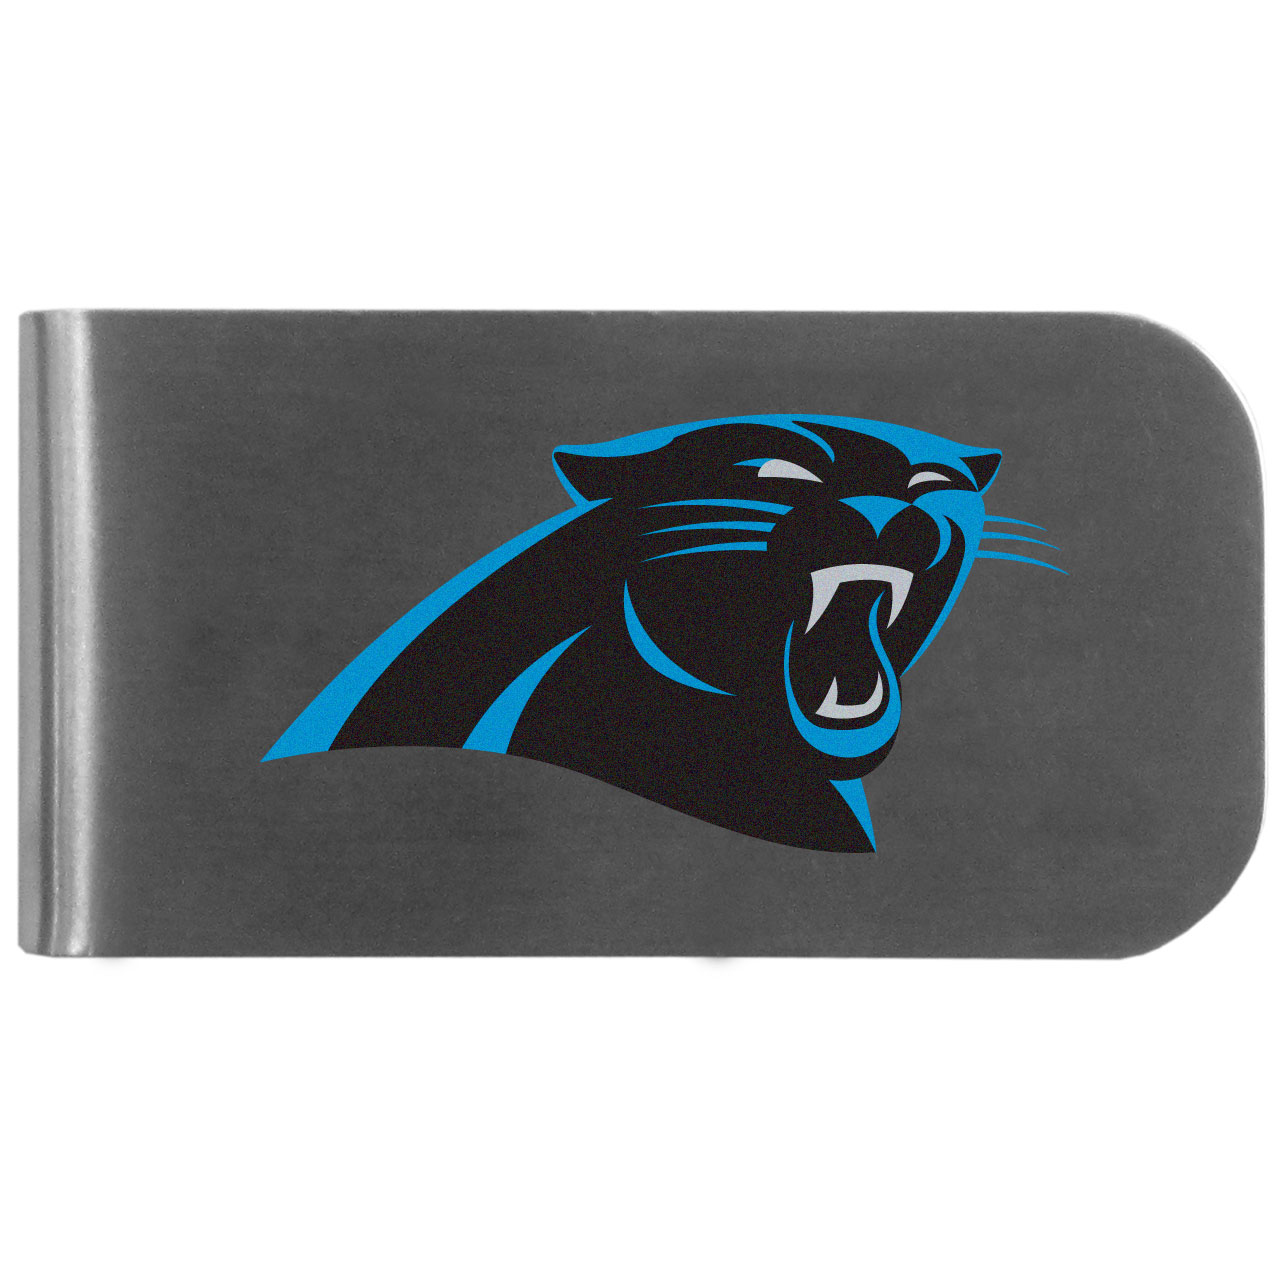 Carolina Panthers Logo Bottle Opener Money Clip - This unique money clip features a classic, brushed-metal finish with a handy bottle opener feature on the back. The clip has the Carolina Panthers logo expertly printed on the front of the clip.